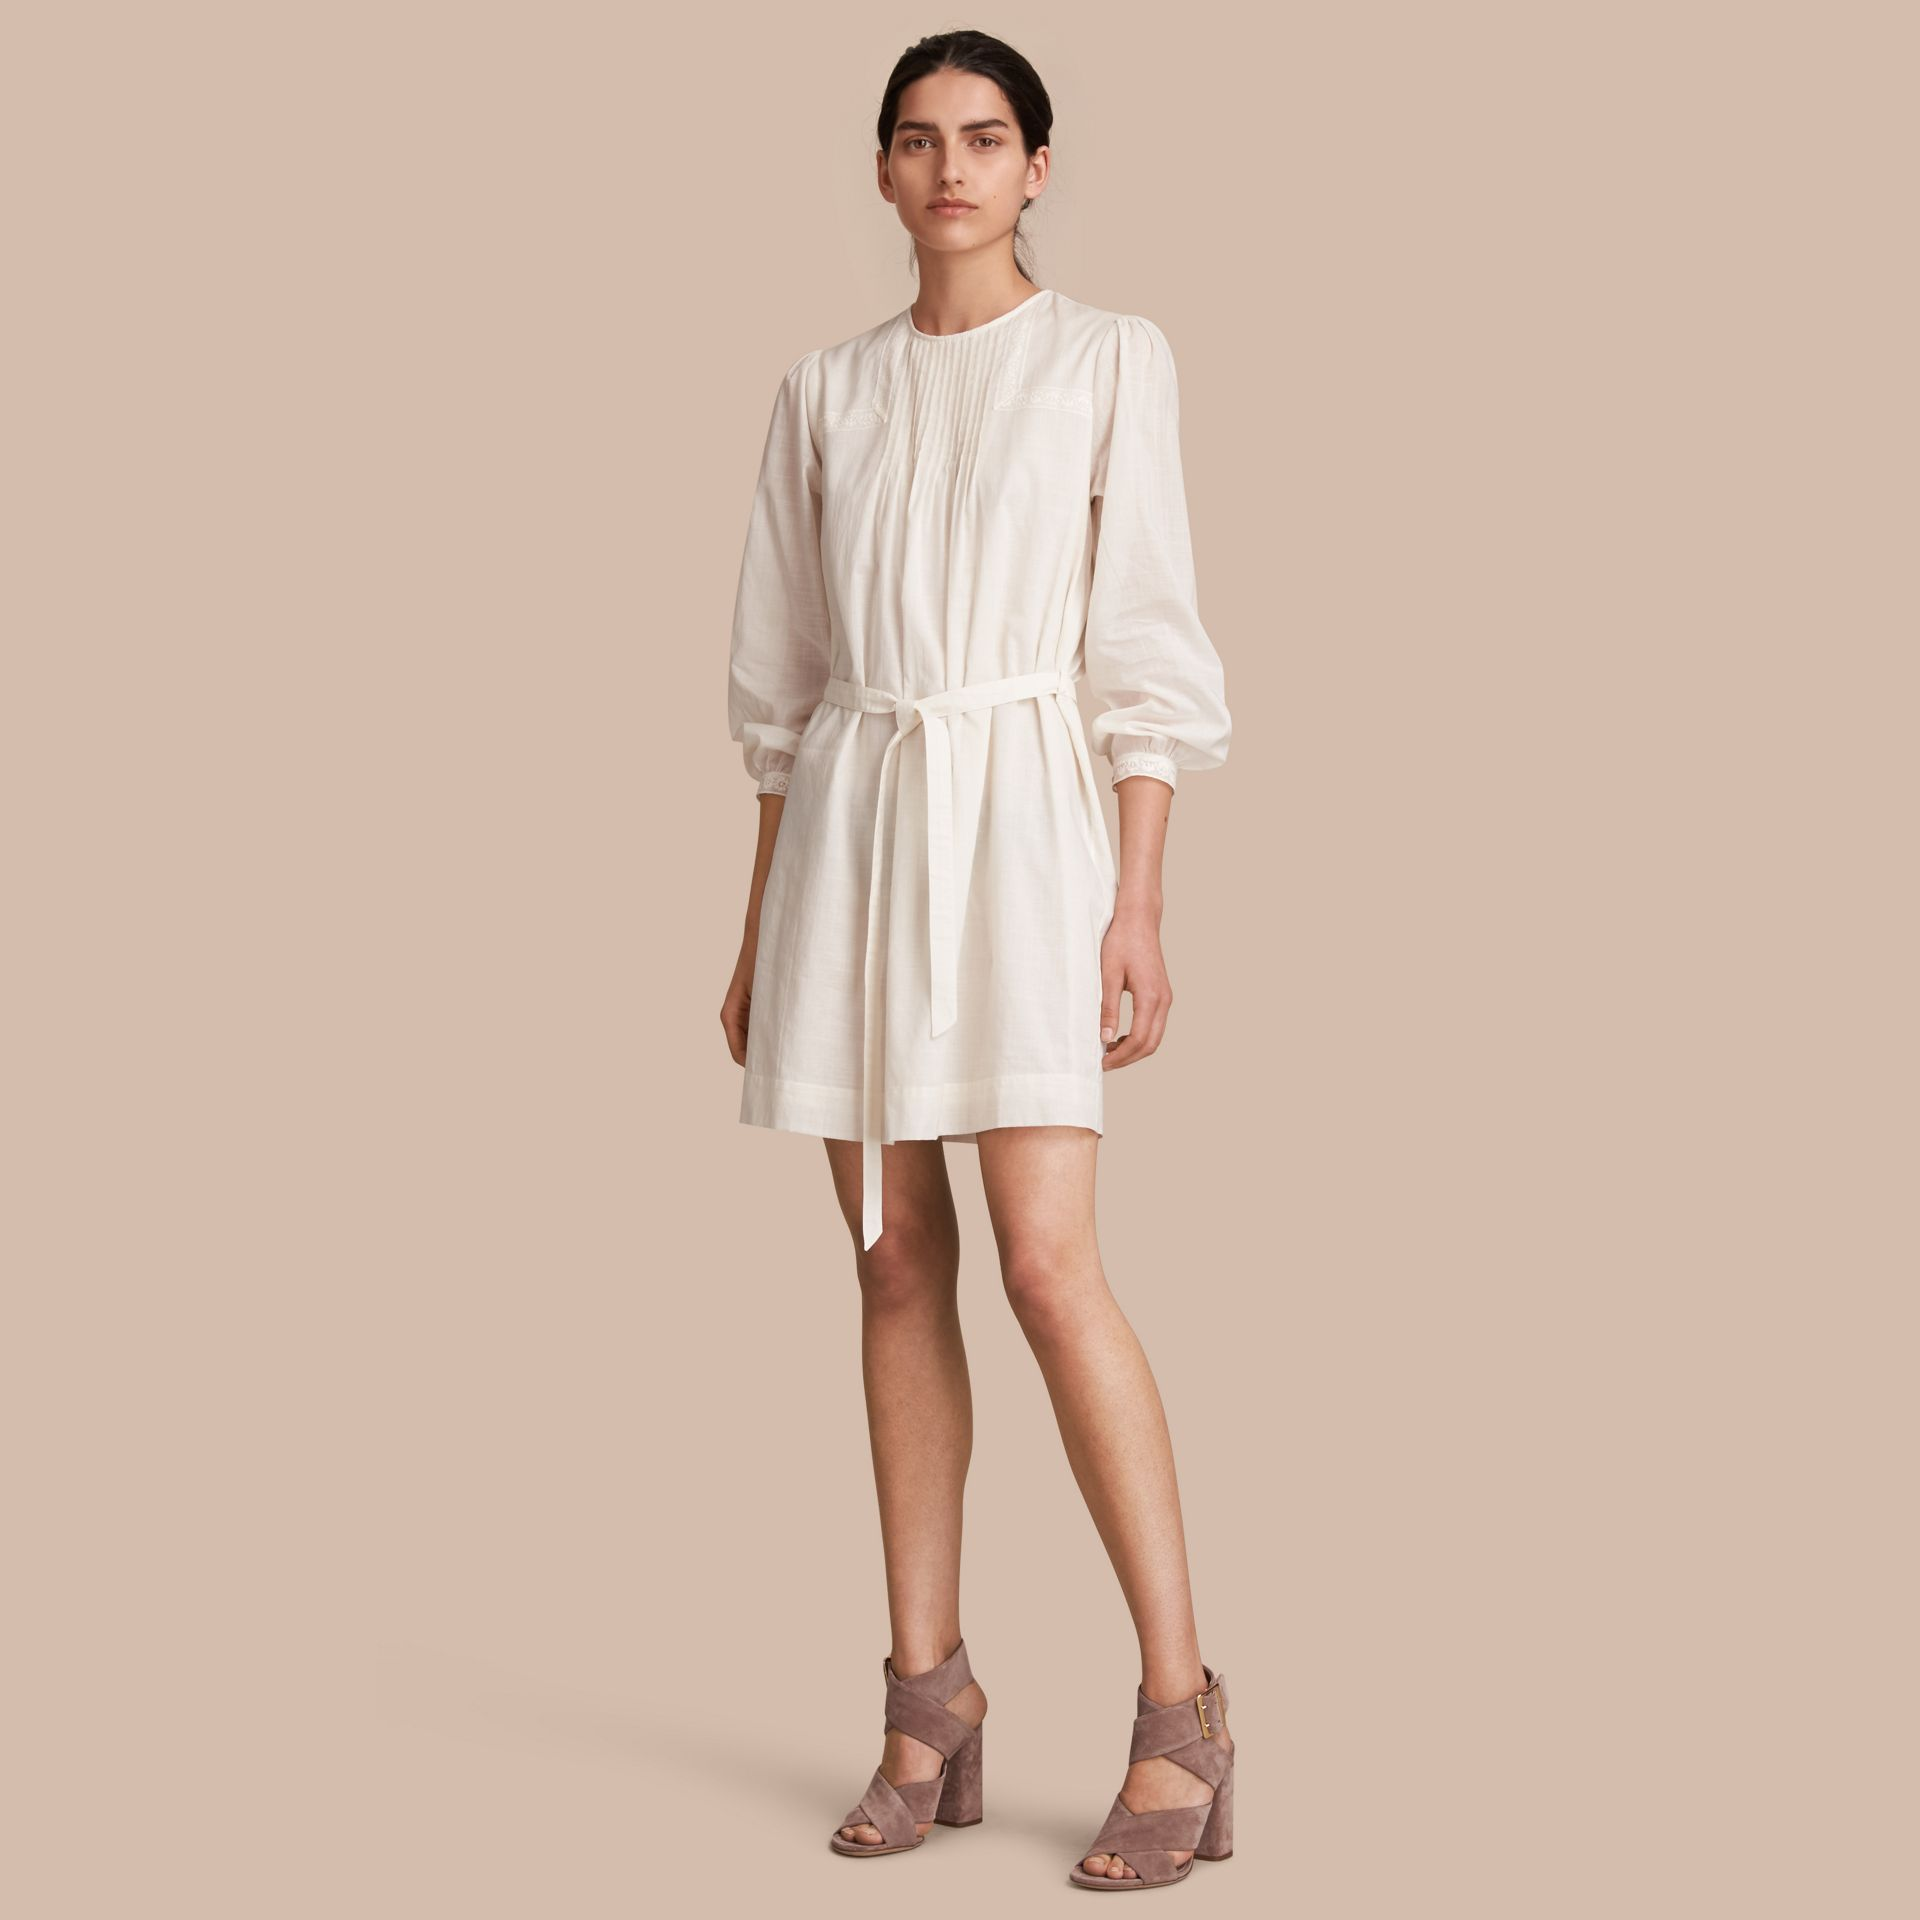 Pintuck and Lace Detail Cotton Dress in Natural White - Women | Burberry - gallery image 1